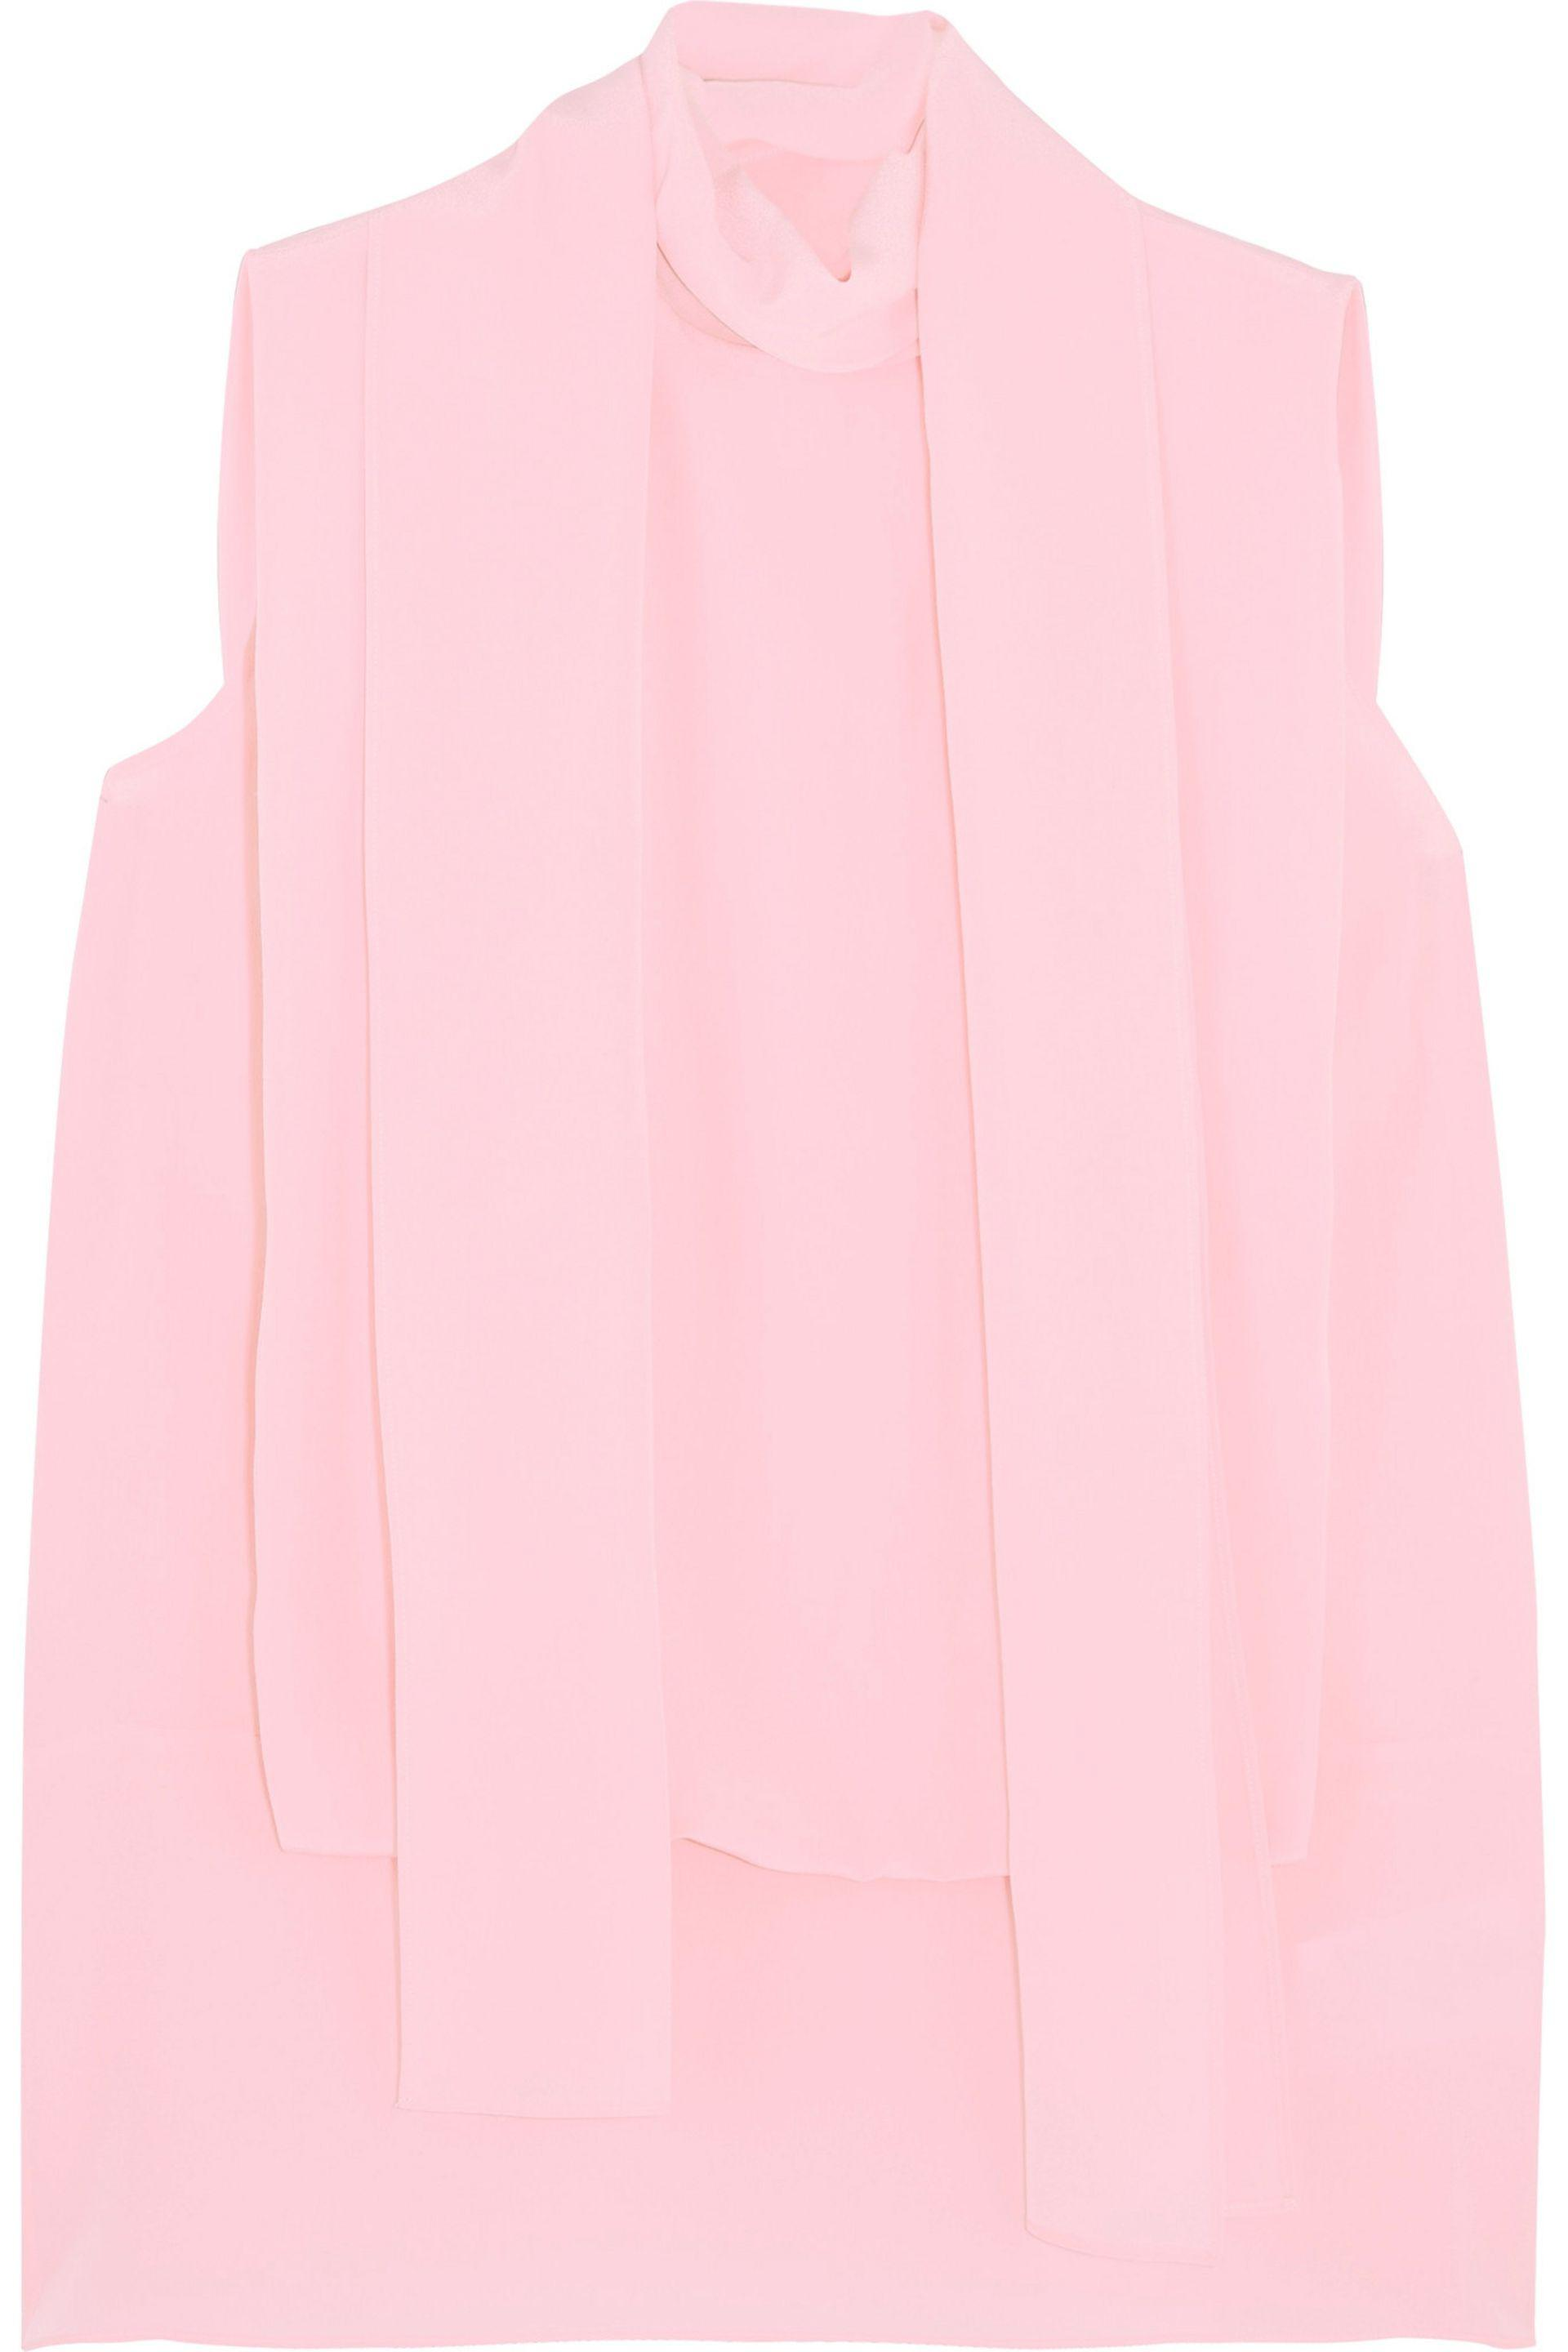 Valentino Woman Draped Silk Crepe De Chine Top Baby Pink Size 48 Valentino Best Price Ost Release Dates Clearance Inexpensive Sale Browse Exclusive Online OvCk82Q8